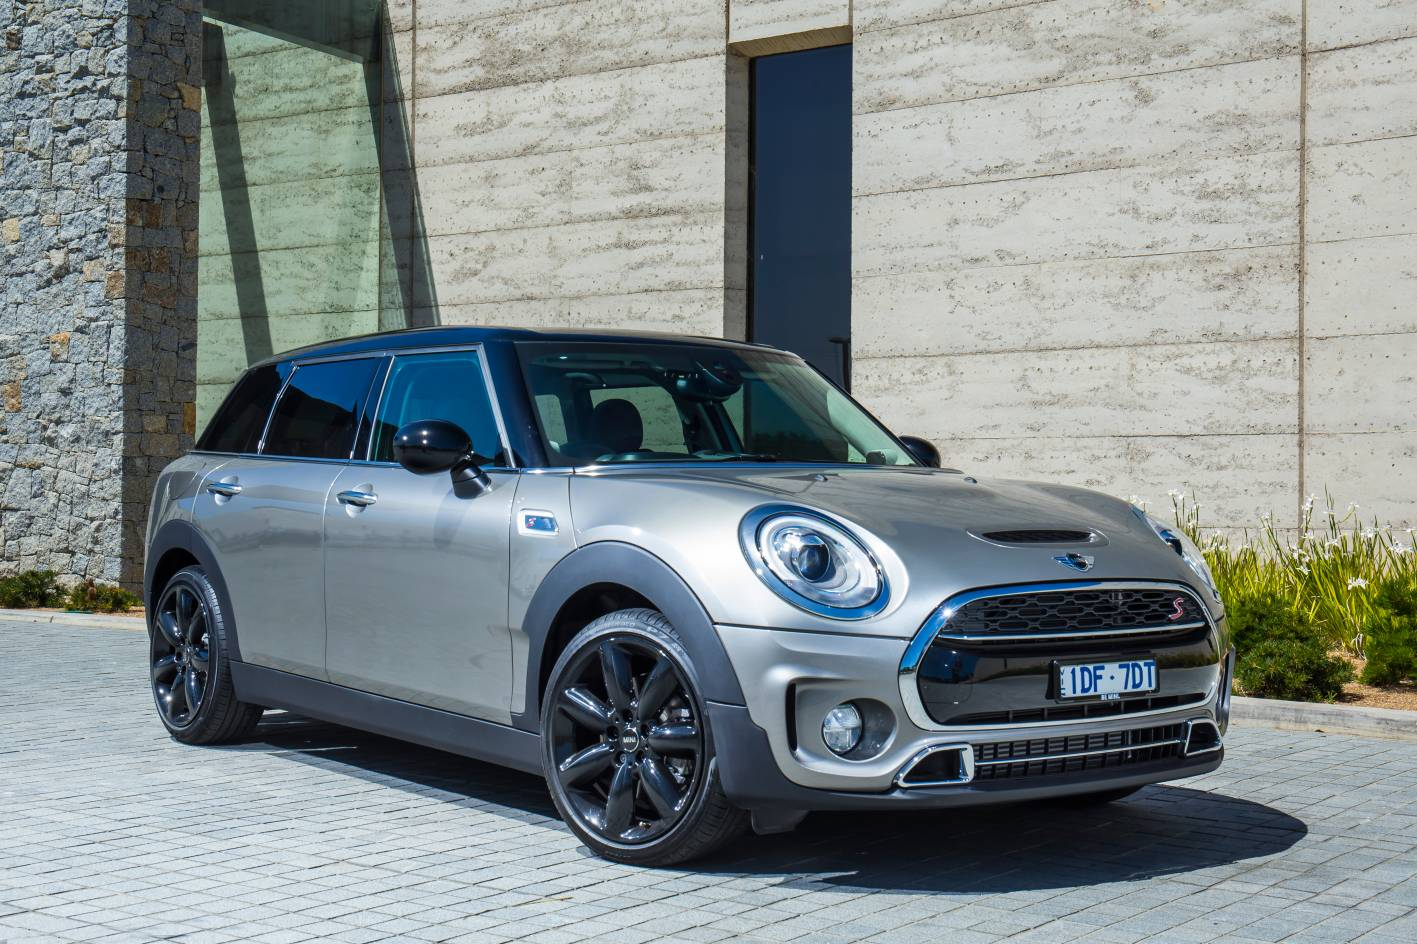 Souvent MINI Cars - News: New 2016 Clubman receives a Shooting-Brake revamp UH16